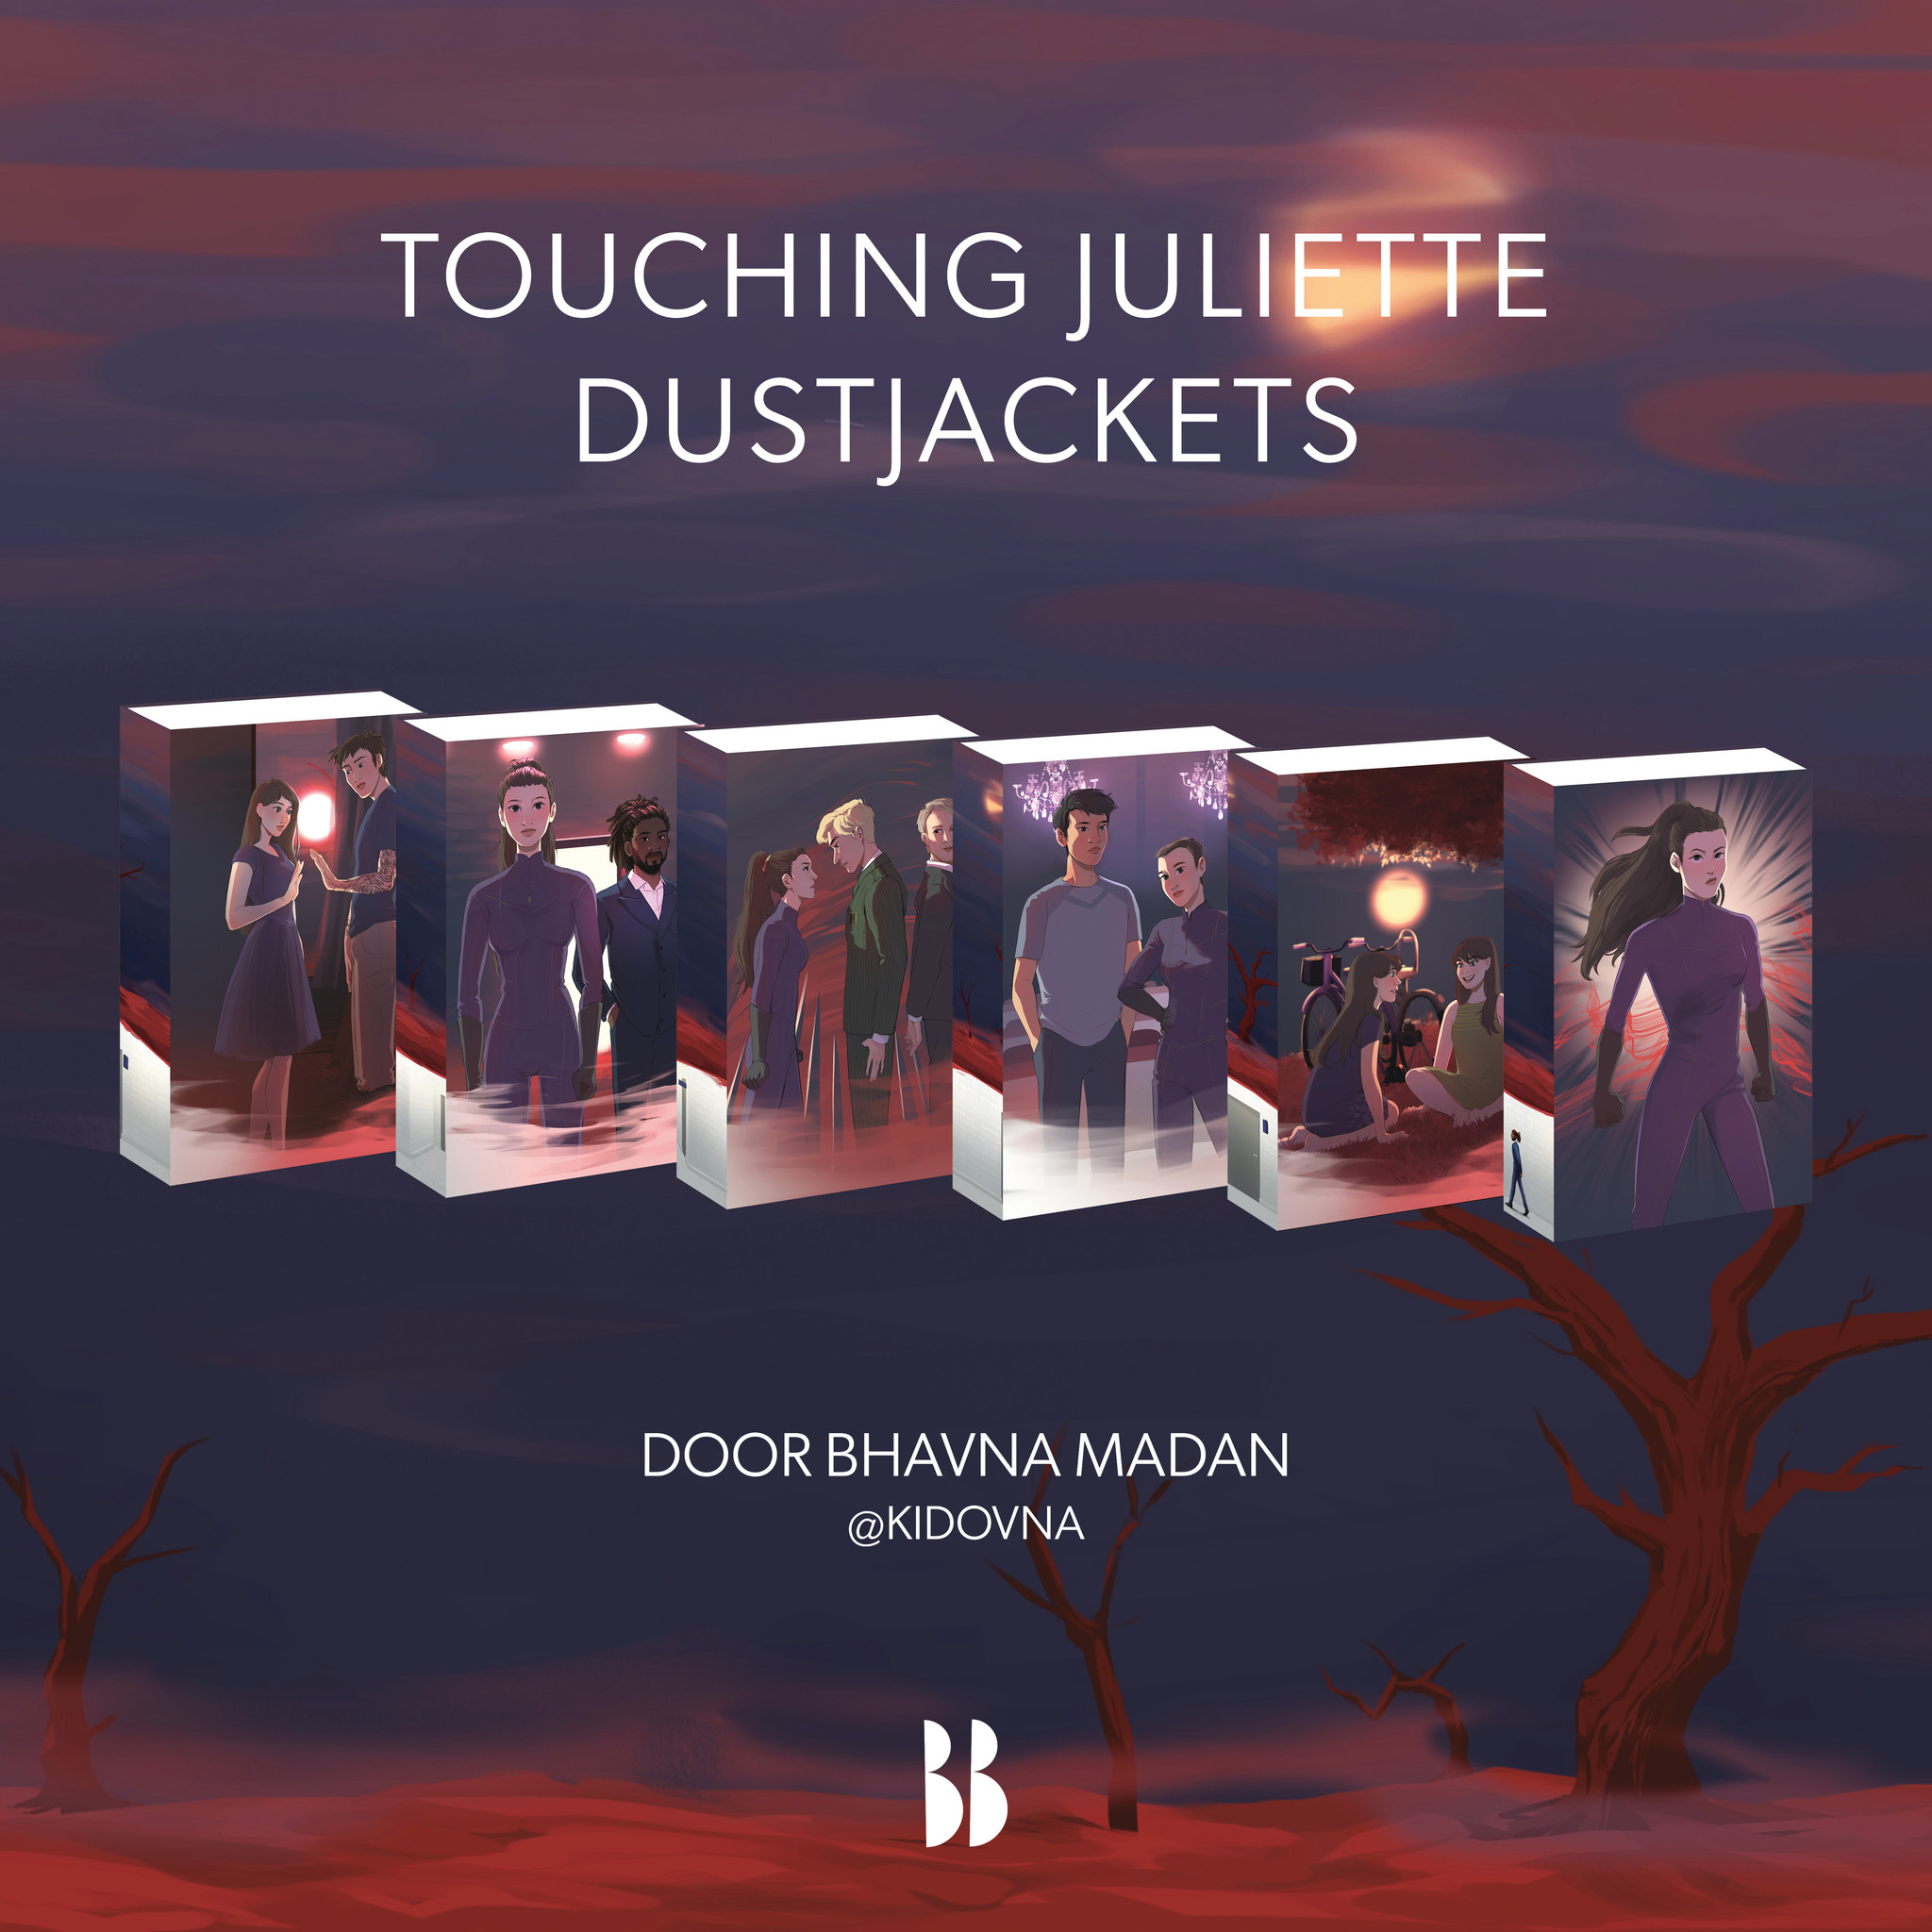 Limited Edition set dust jackets - Touching Juliette